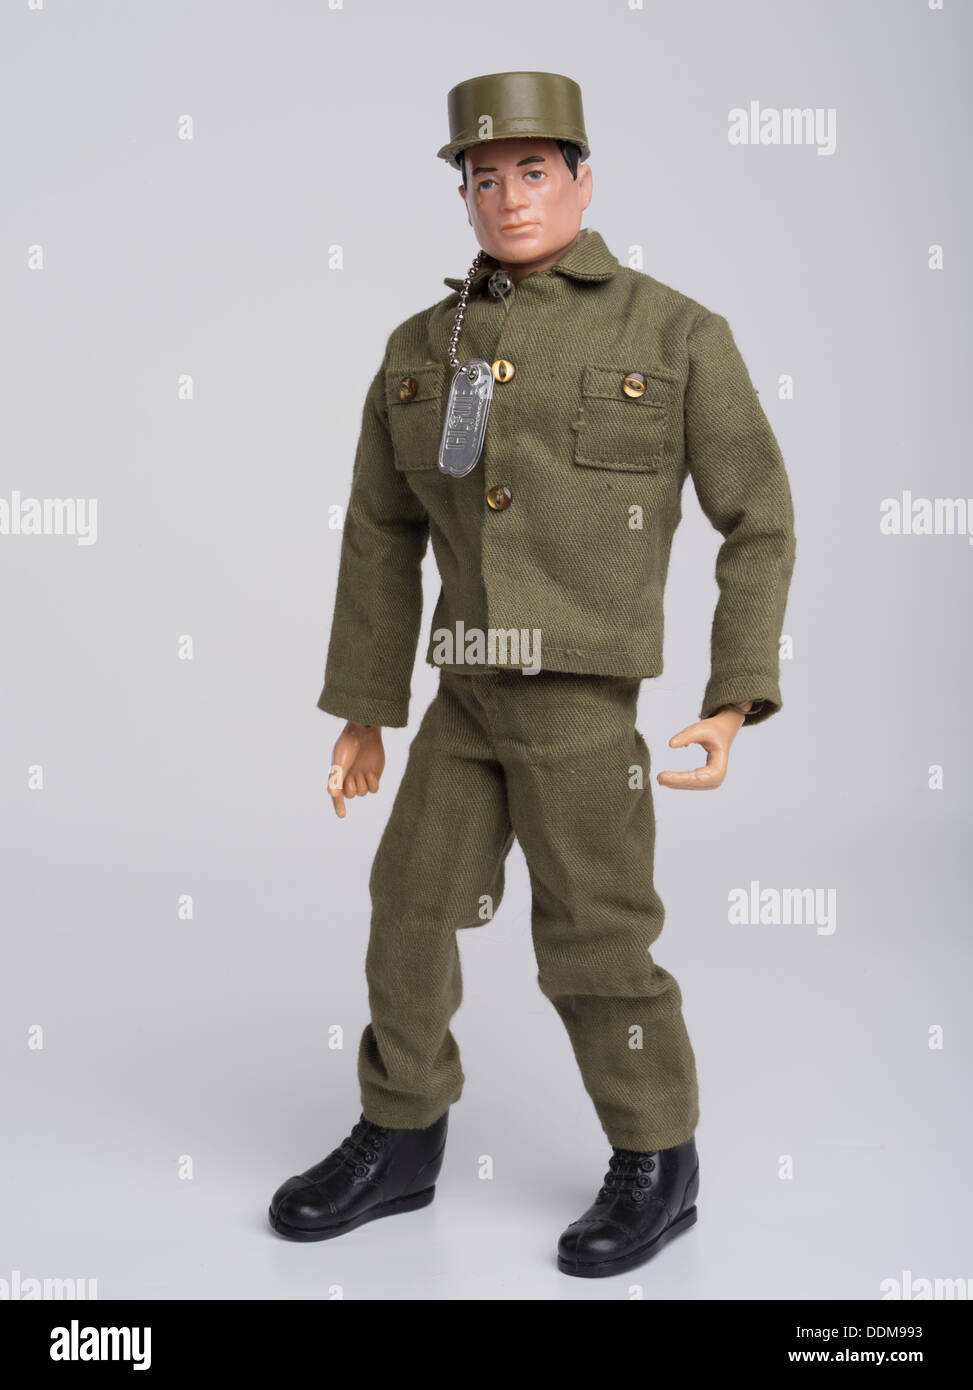 1964 GI Joe Action Figure By Toy Company Hasbro US Armed Forces Army Marine